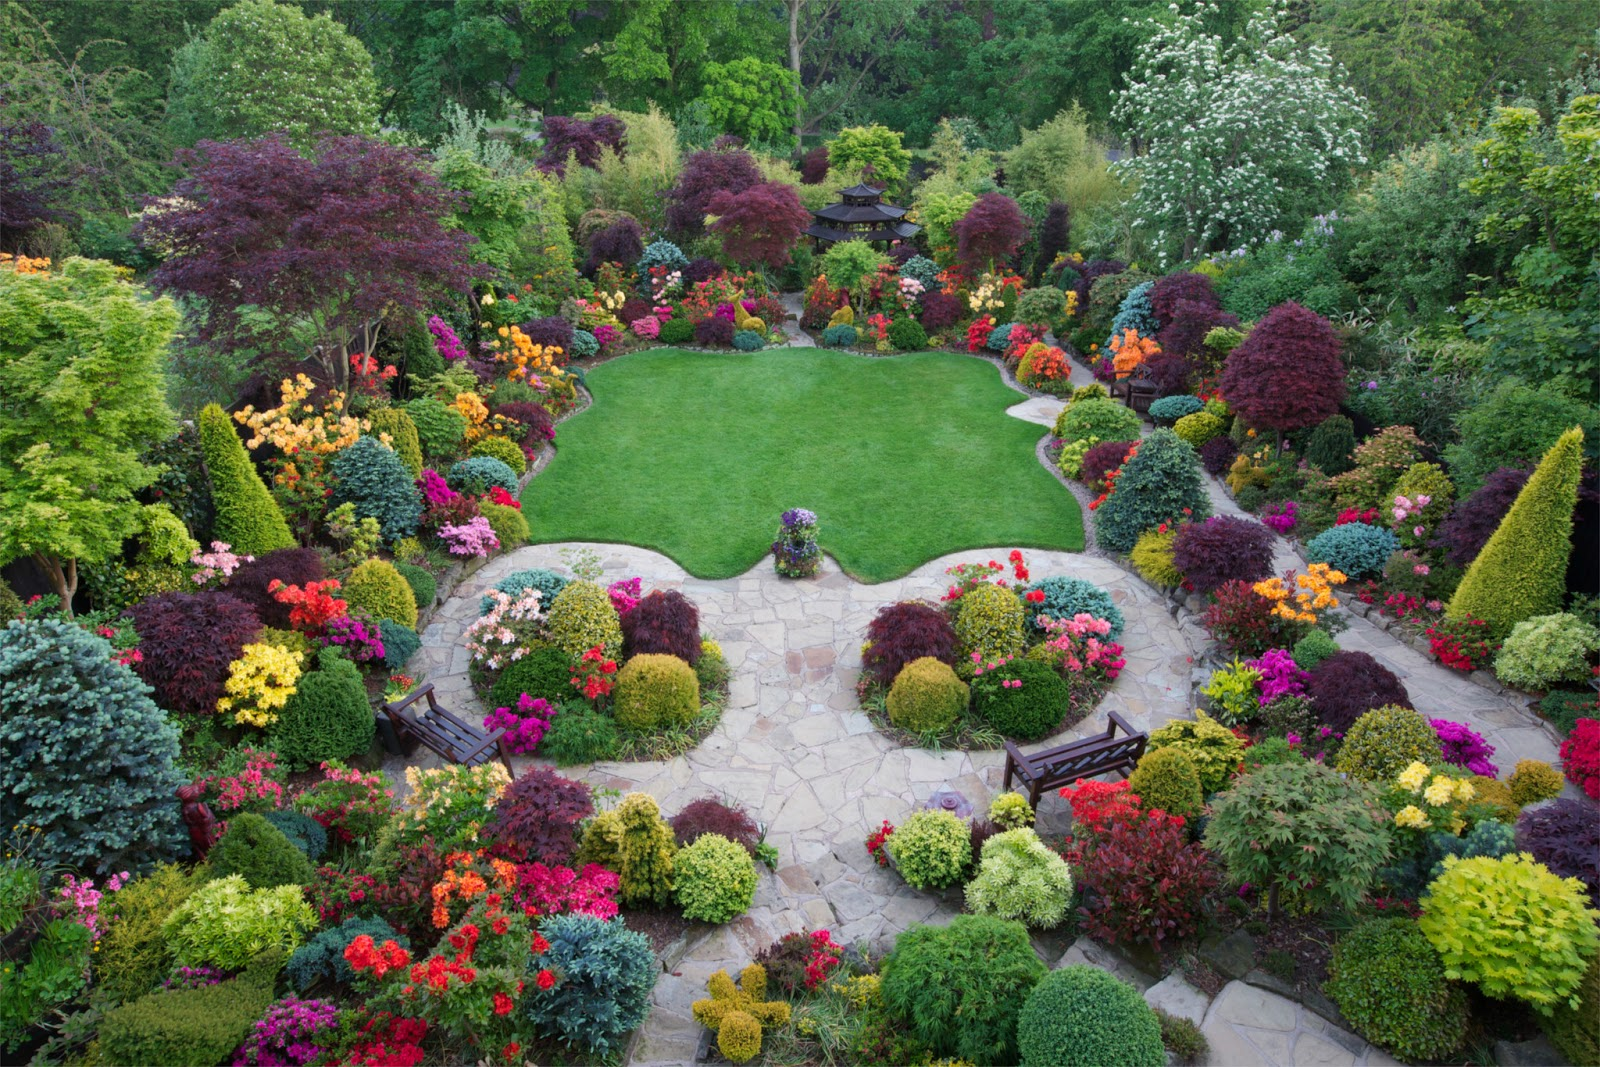 Drelis gardens four seasons garden the most beautiful home gardens in the world for Amazing small gardens